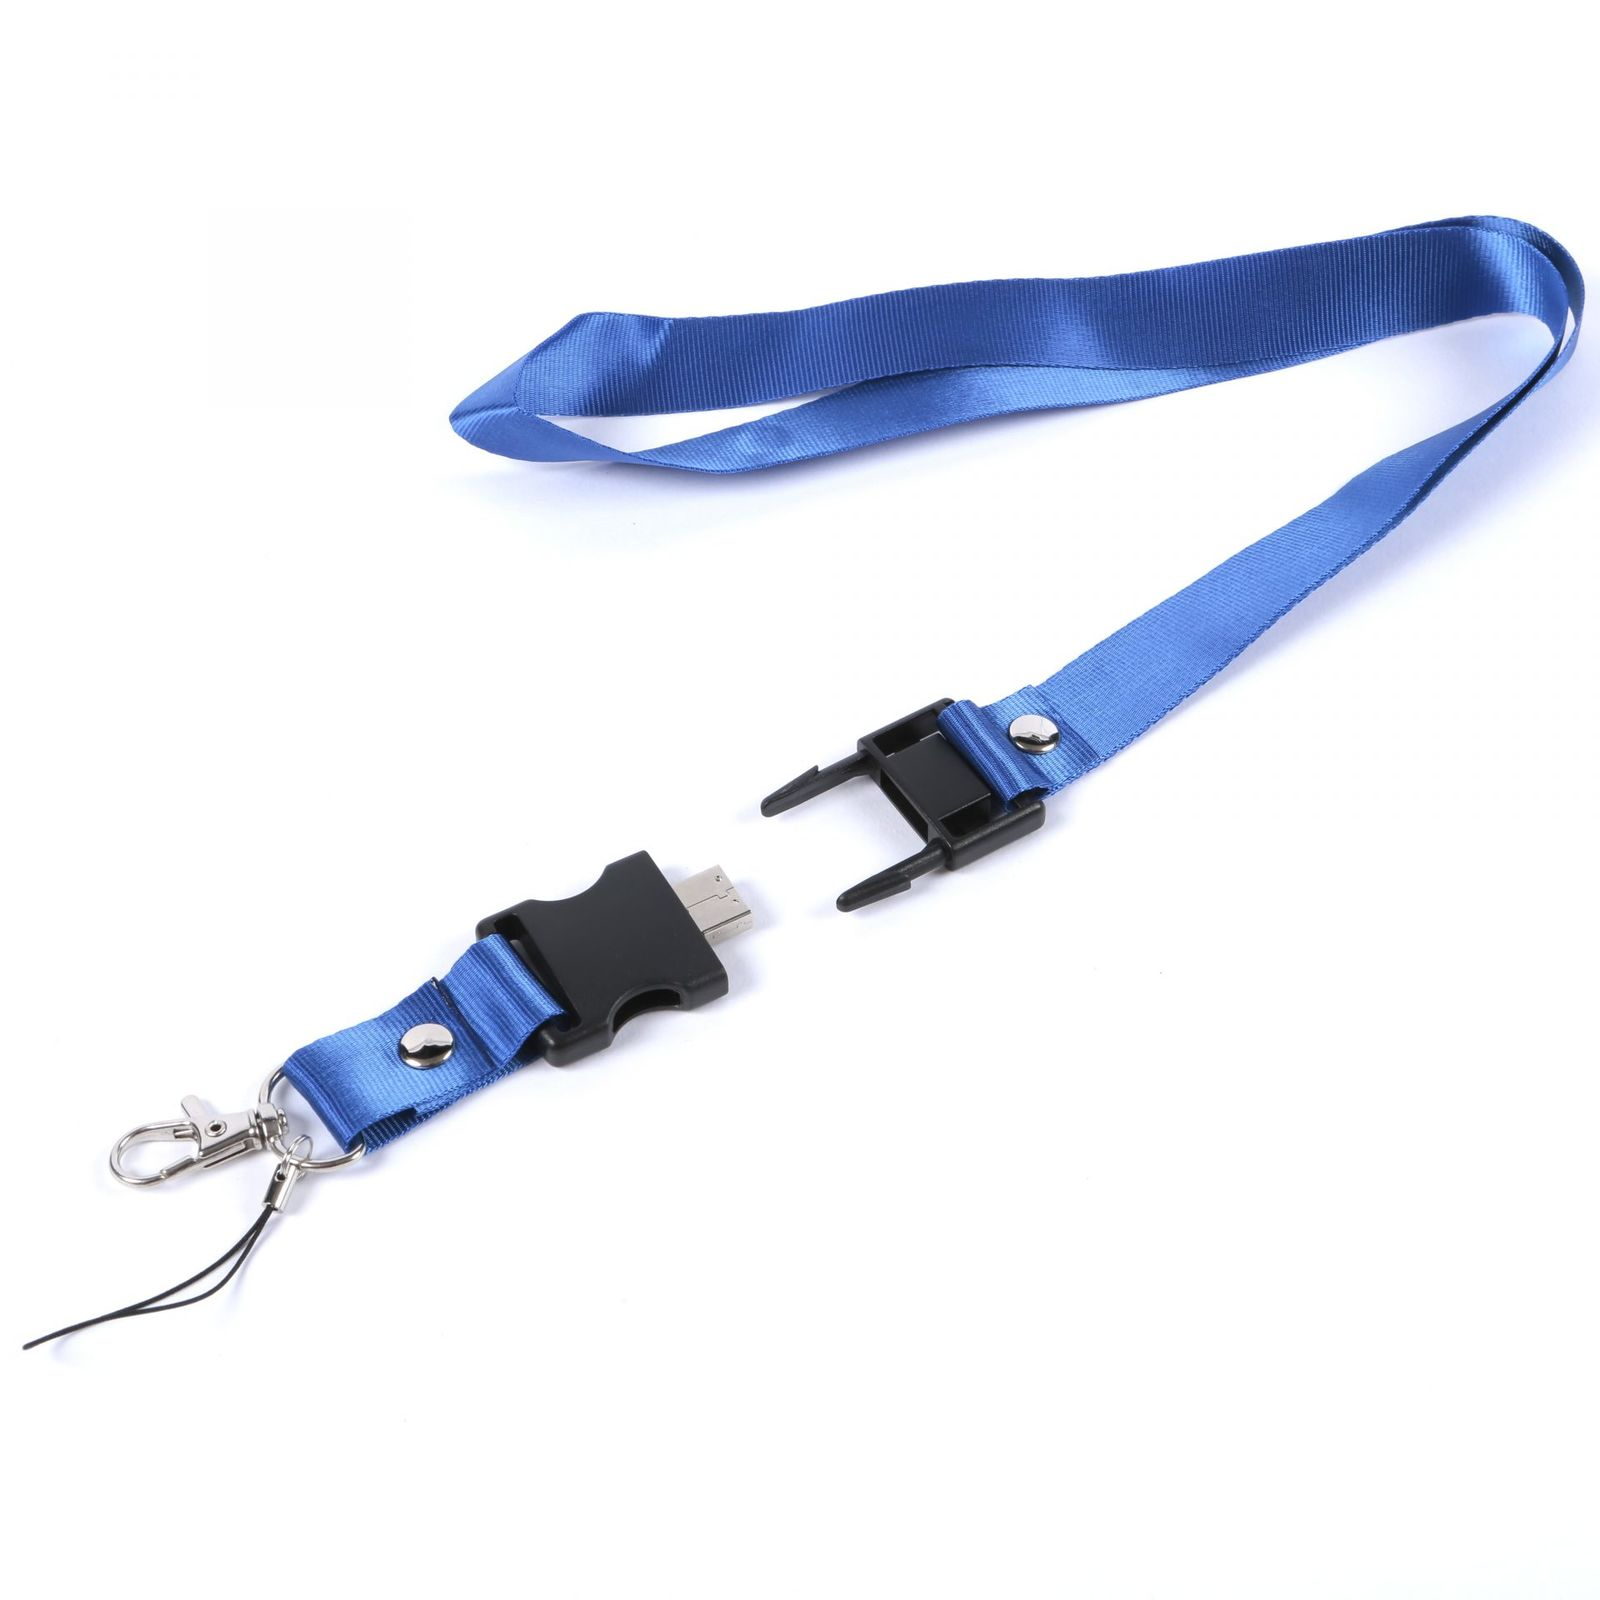 Buy Classic USB Lanyards on Lanyards Direct Today!